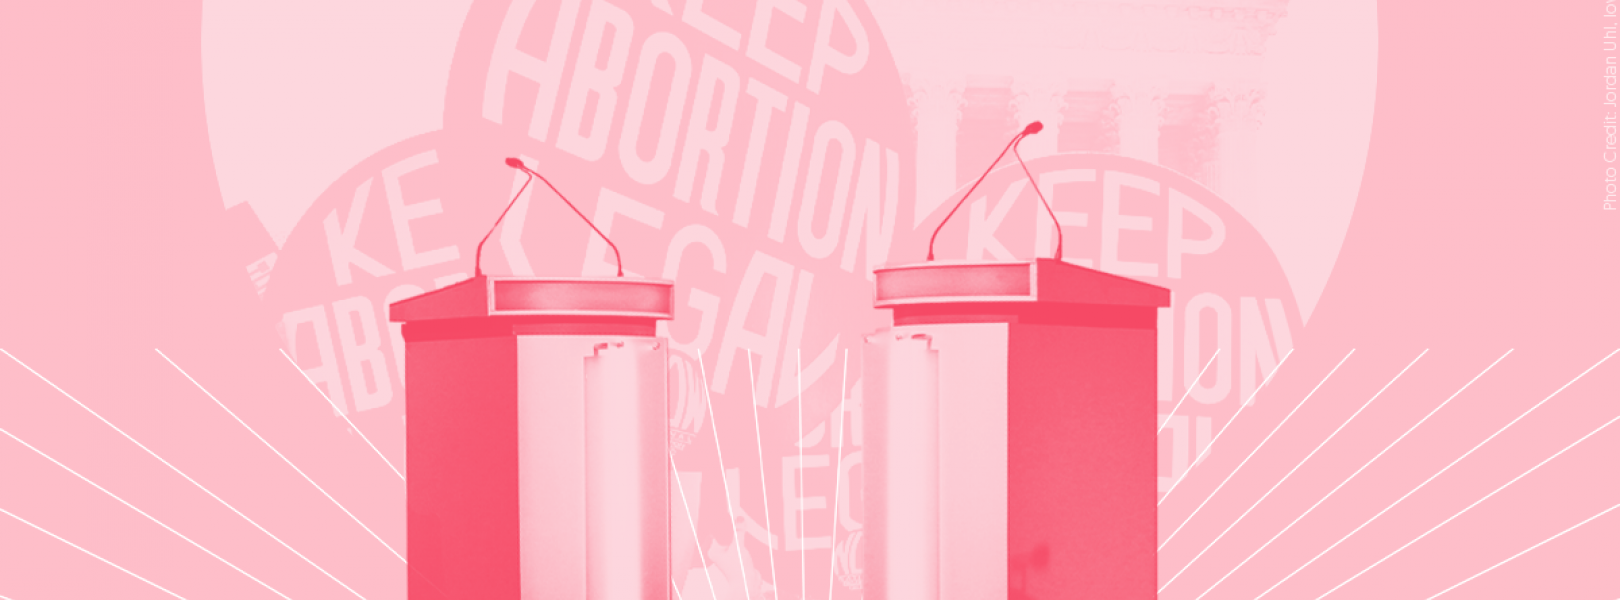 ask-abortion-questions-primary-debates.png